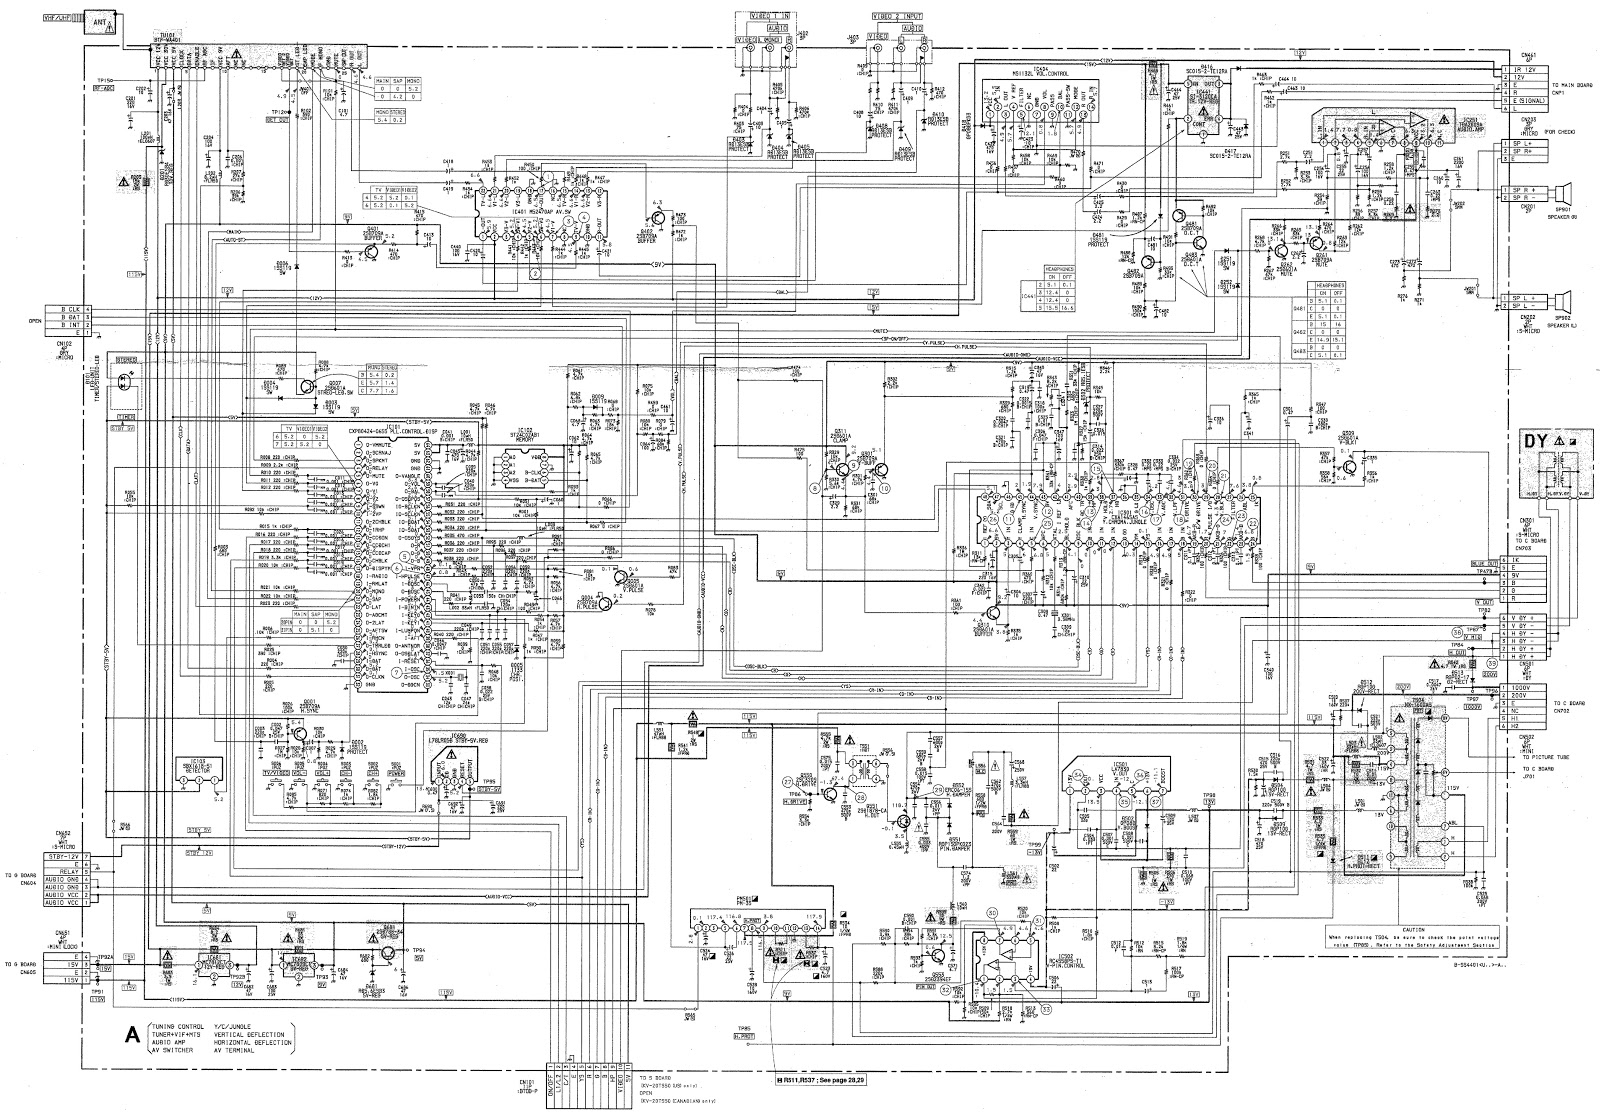 hight resolution of sony tv circuit diagram moreover tv schematic circuit diagram also sony tv circuit diagram moreover tv